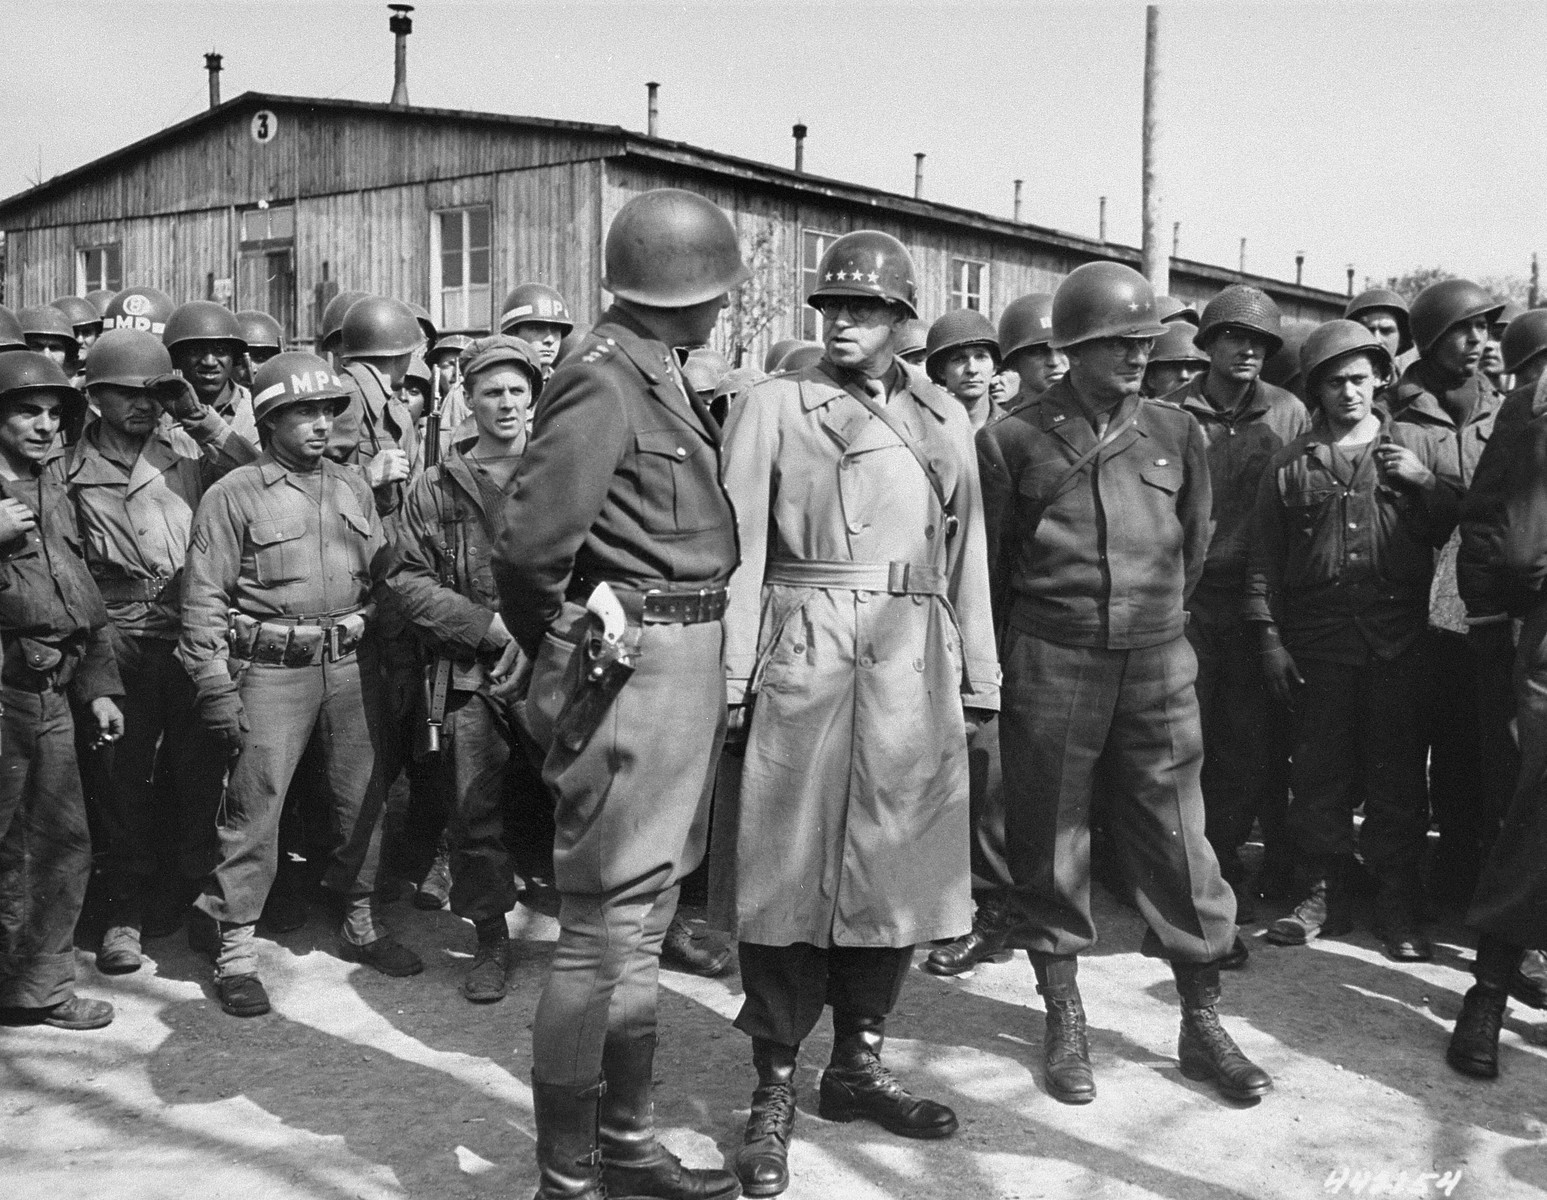 General George S. Patton (with his back to camera) converses with General Omar Bradley during their tour of the newly liberated Ohrdruf concentration camp.